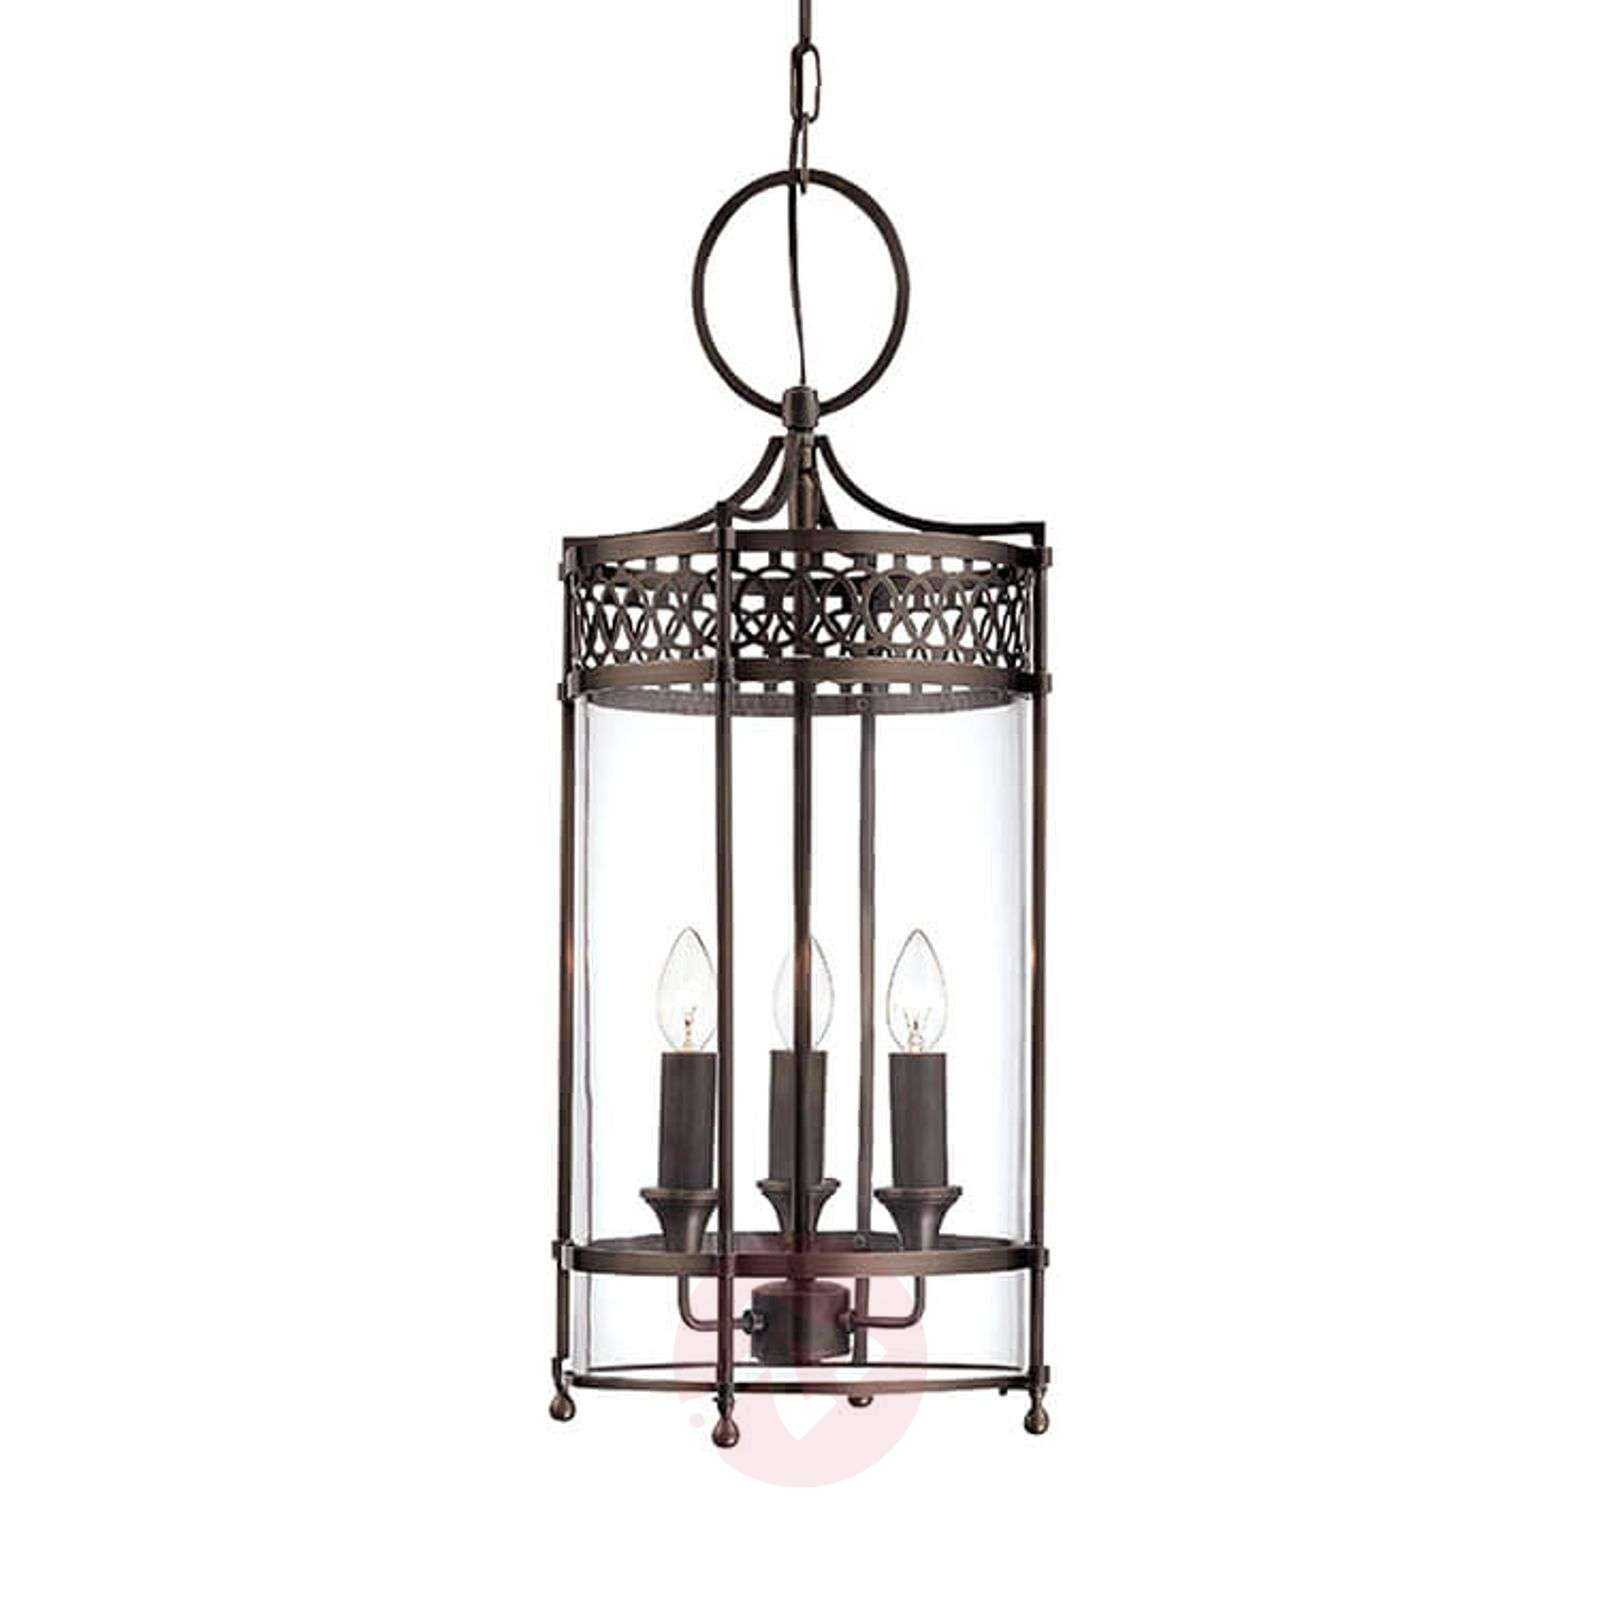 Hanging light Guildhall in bronze-3048572-01